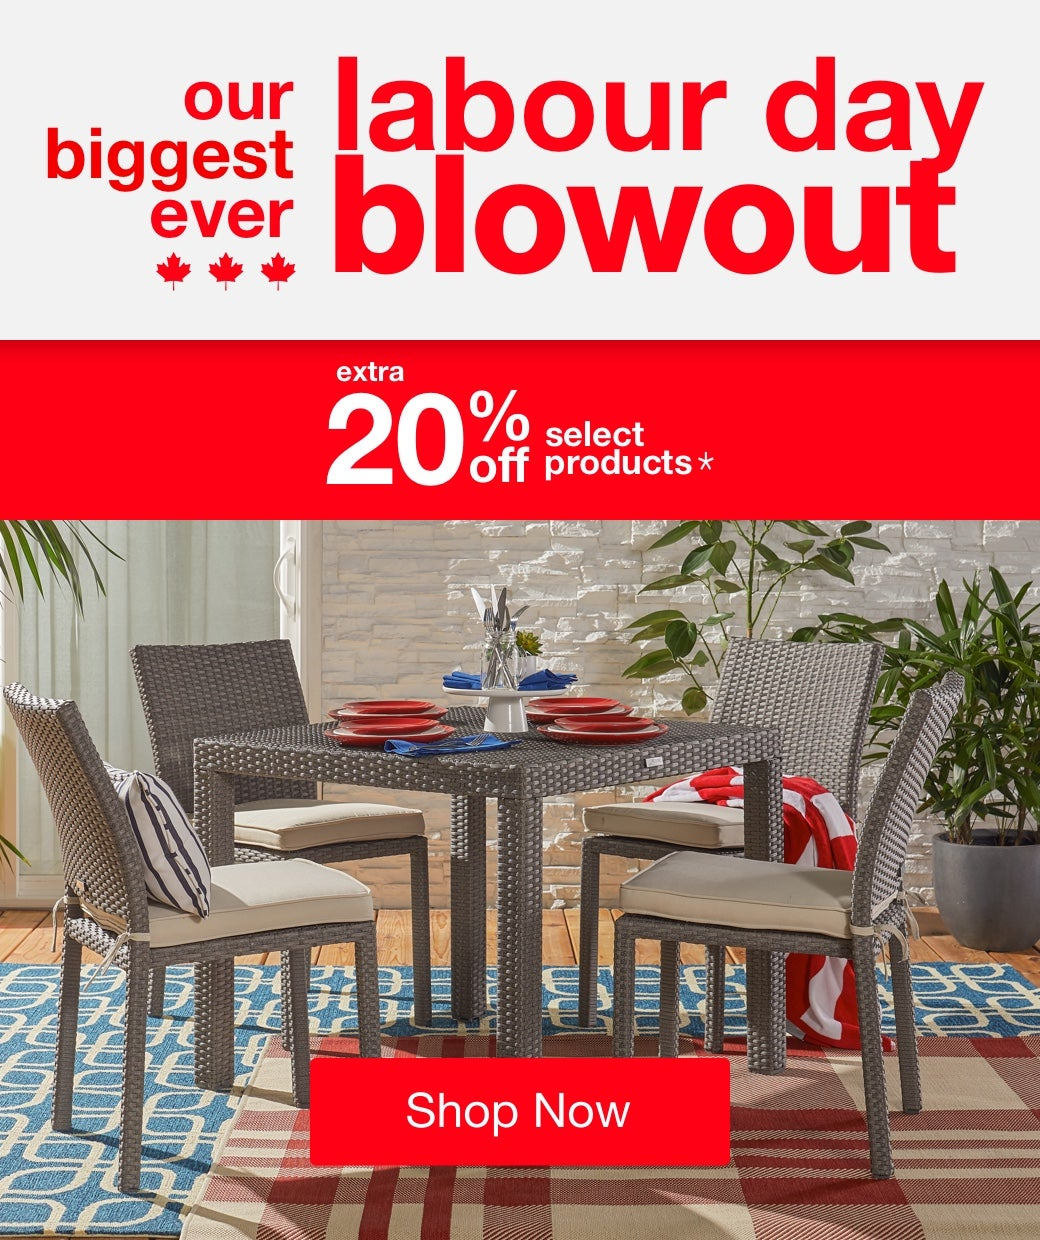 Labour Day Blowout mobile